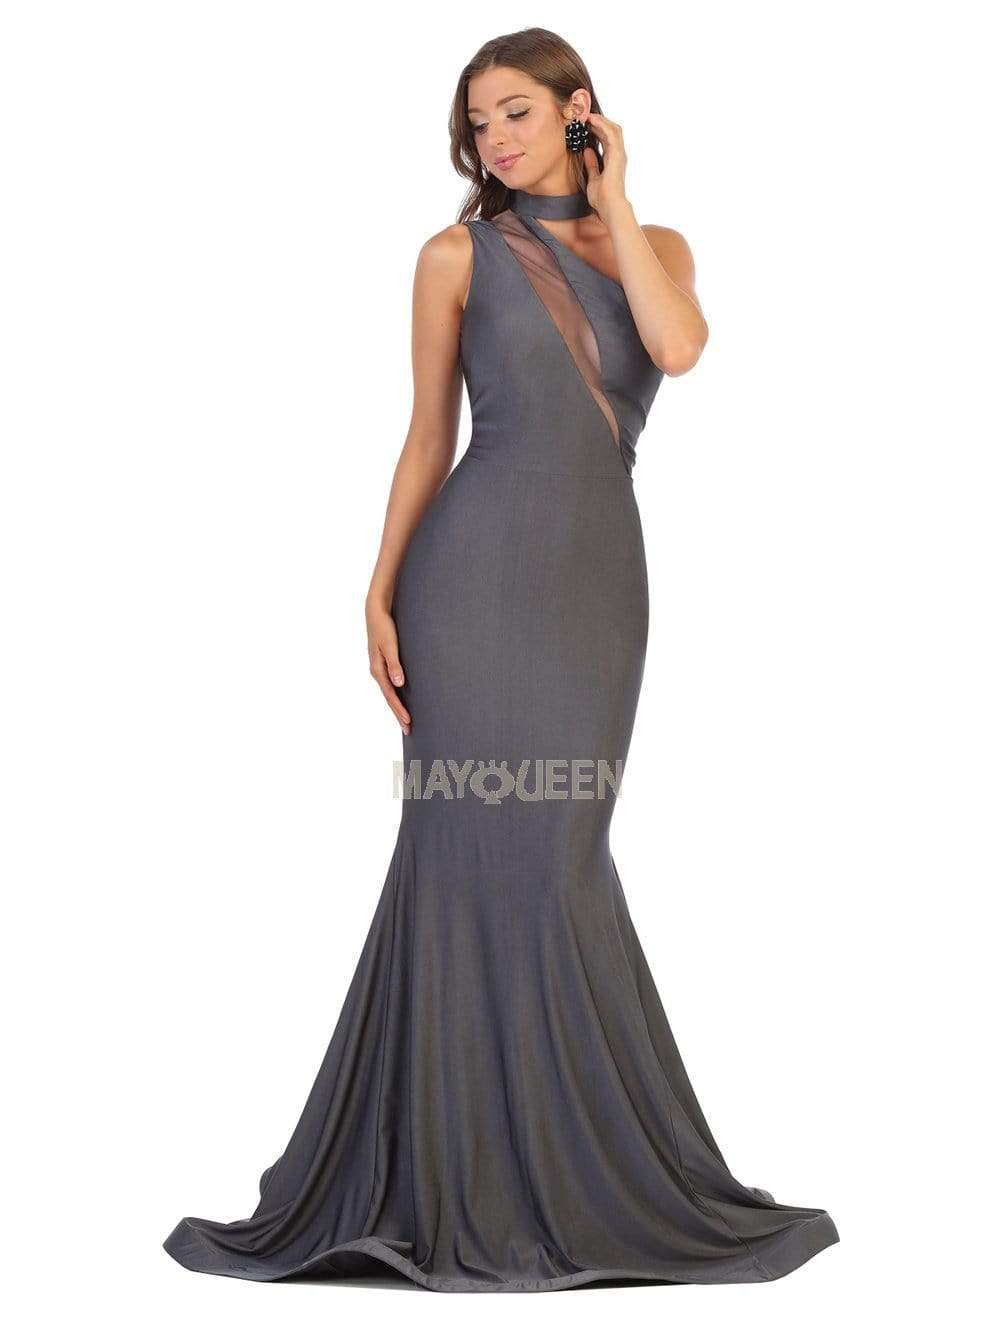 May Queen - MQ1773 Choker Ornate Illusion Paneled Trumpet Dress Evening Dresses 2 / Charcoal Gray